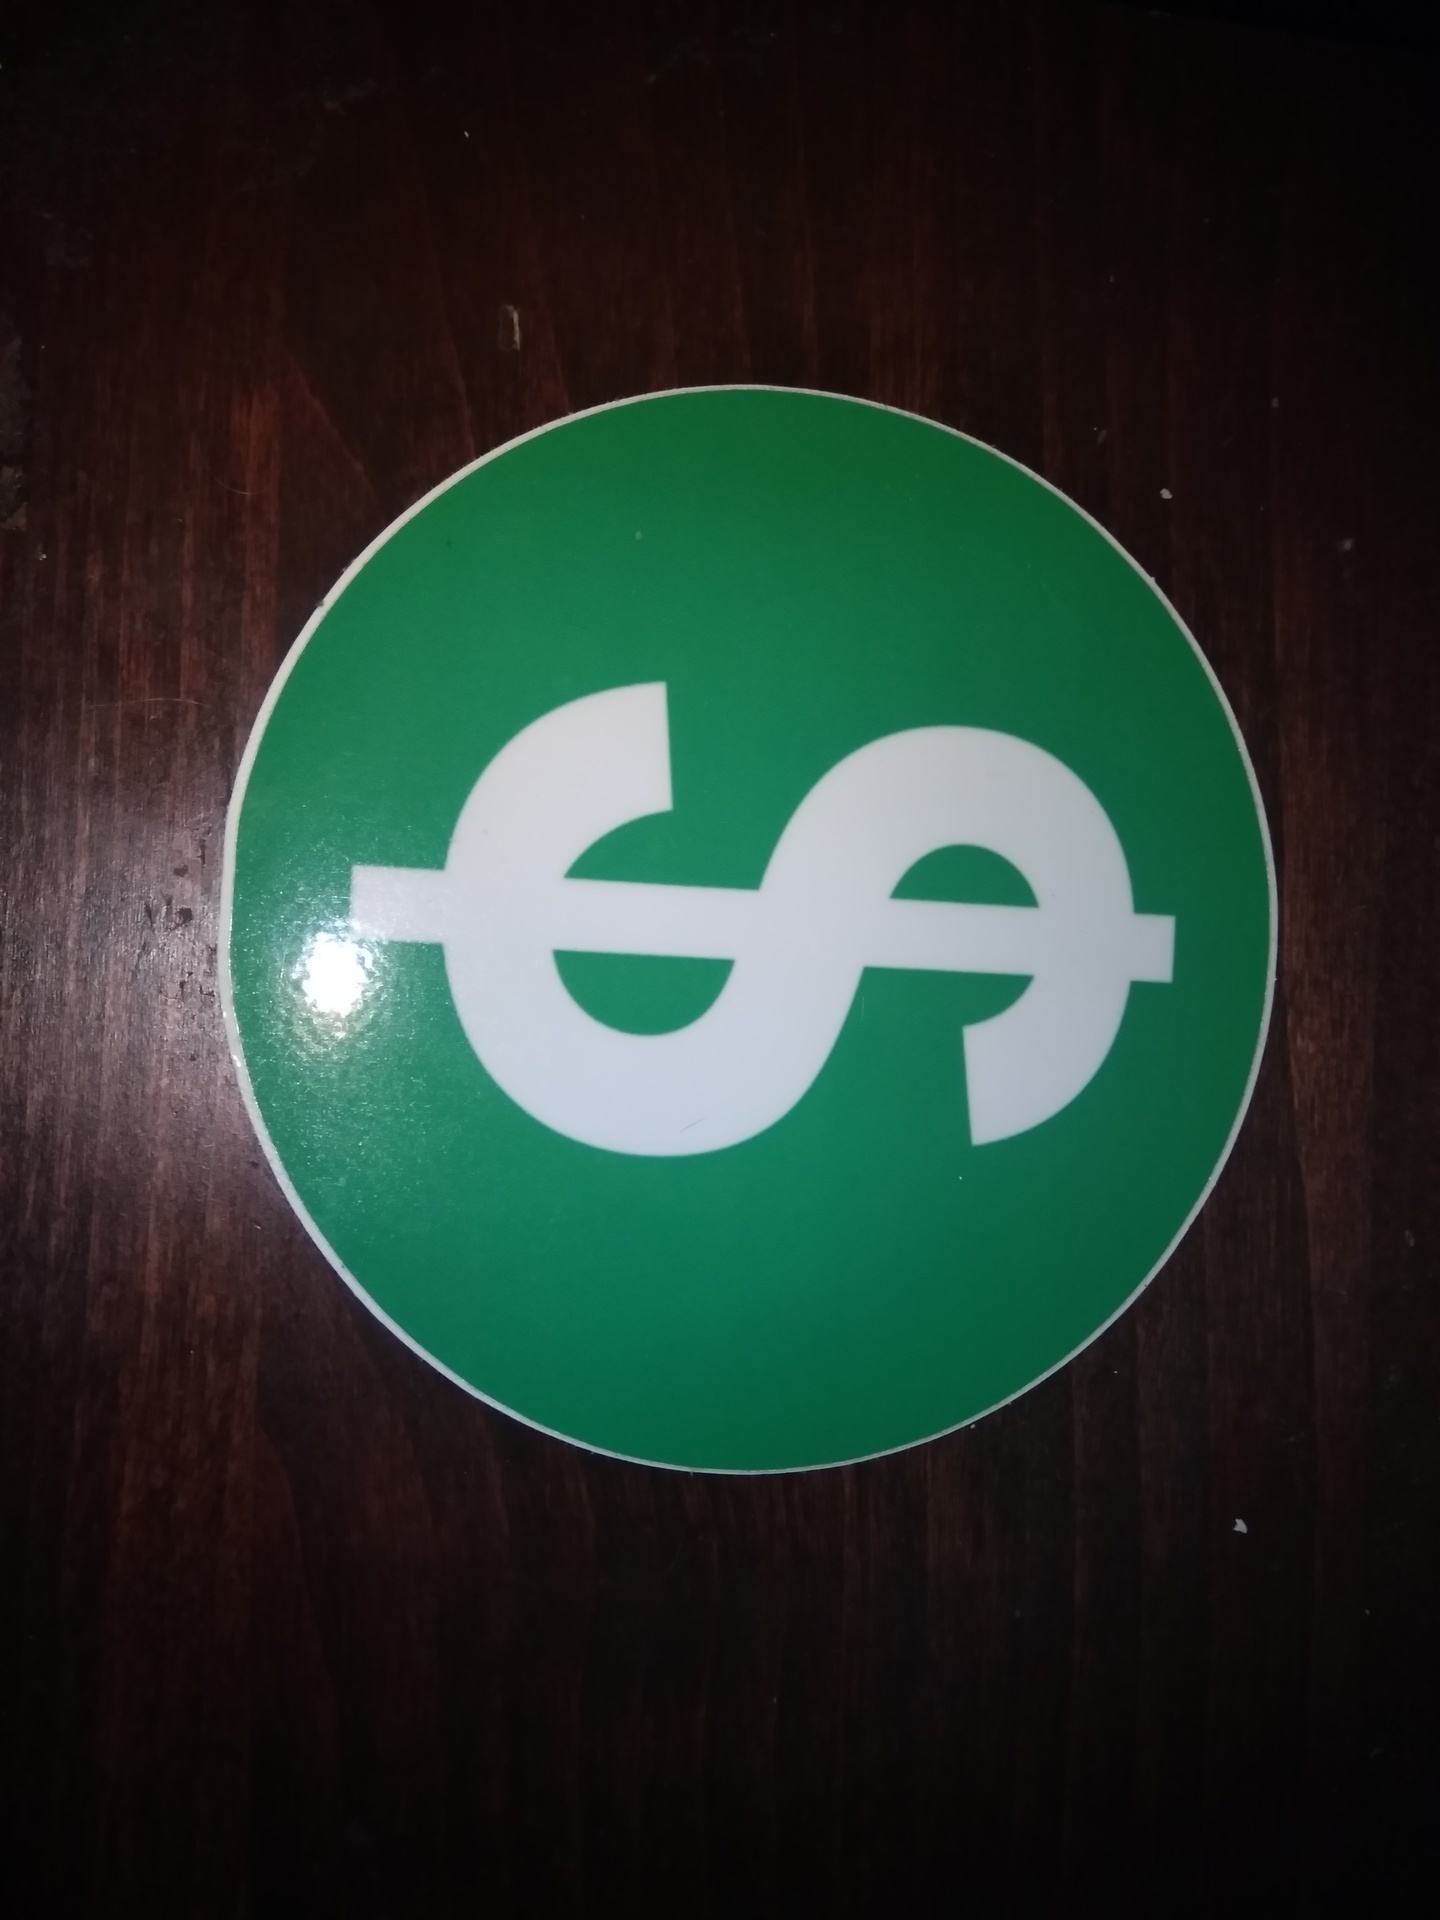 preston's photograph of their Circle Stickers